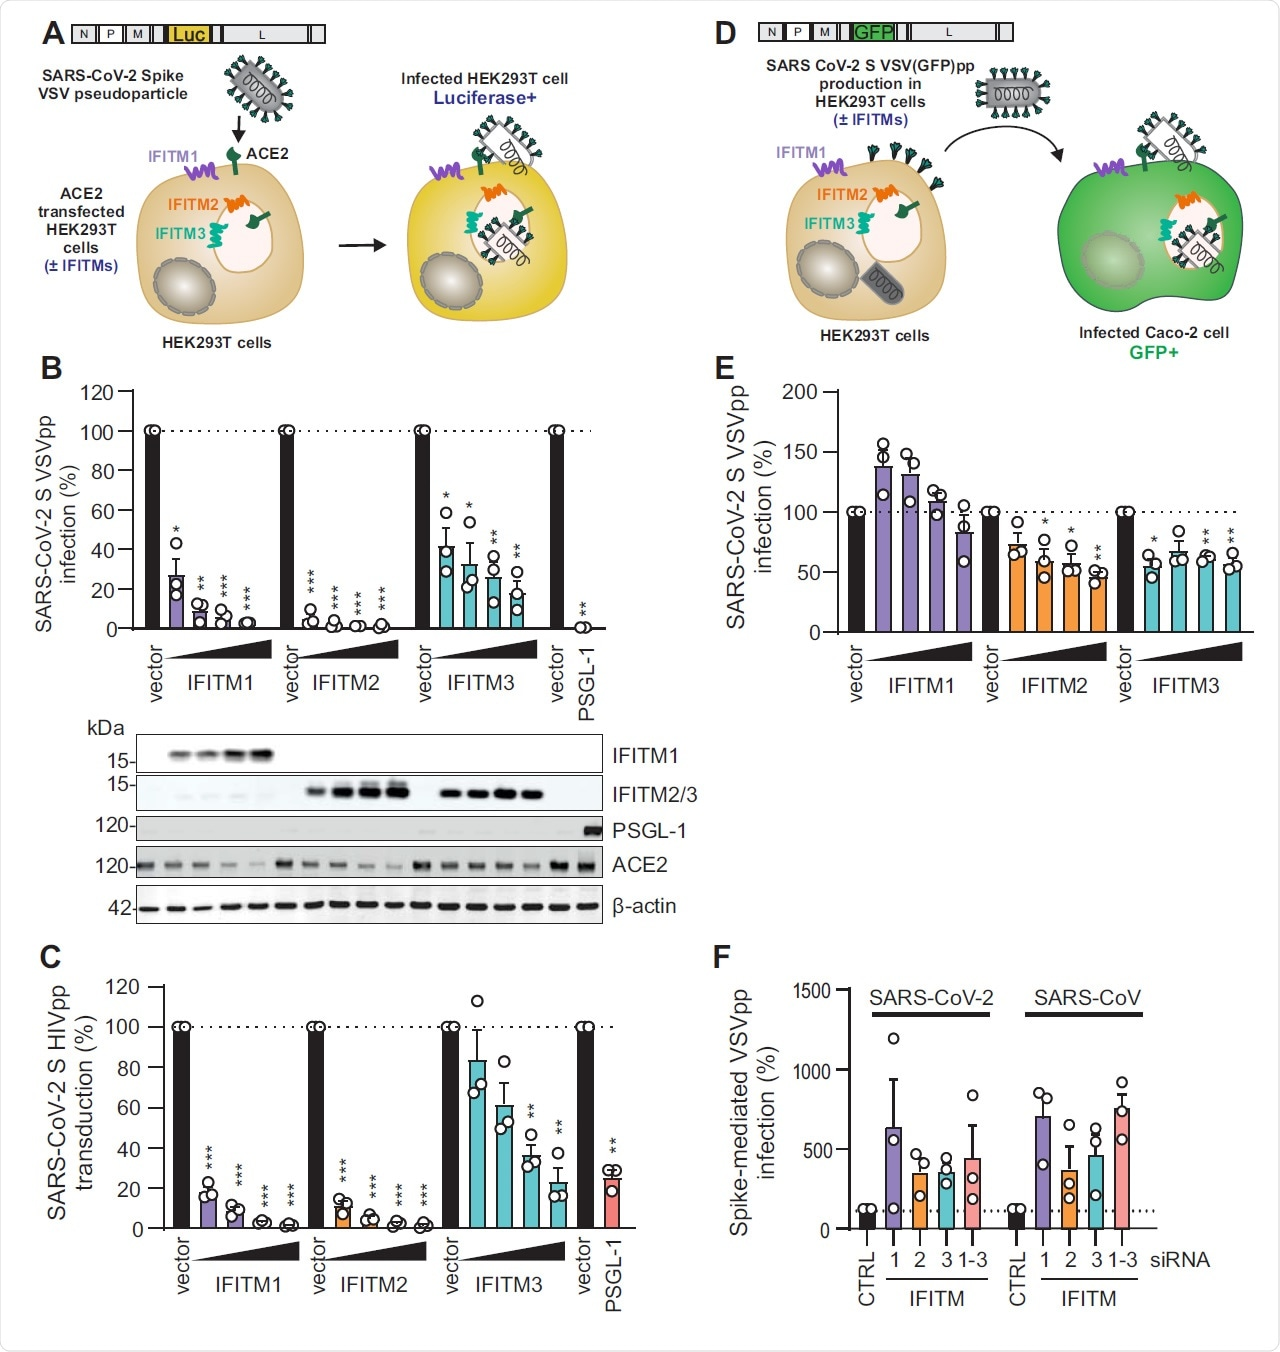 Figure S1 (related to Figure 1). VSV-G-mediated infection by VSVpp is not significantly inhibited by IFITM proteins. (A) Quantification of VSV(luc)ΔG*VSV-G entry by luciferase activity in HEK293T cells transiently expressing indicated proteins and infected 24h post transfection with VSV(luc) ΔG*VSV-G (MOI 0.025) for 16 h. Bars represent means of